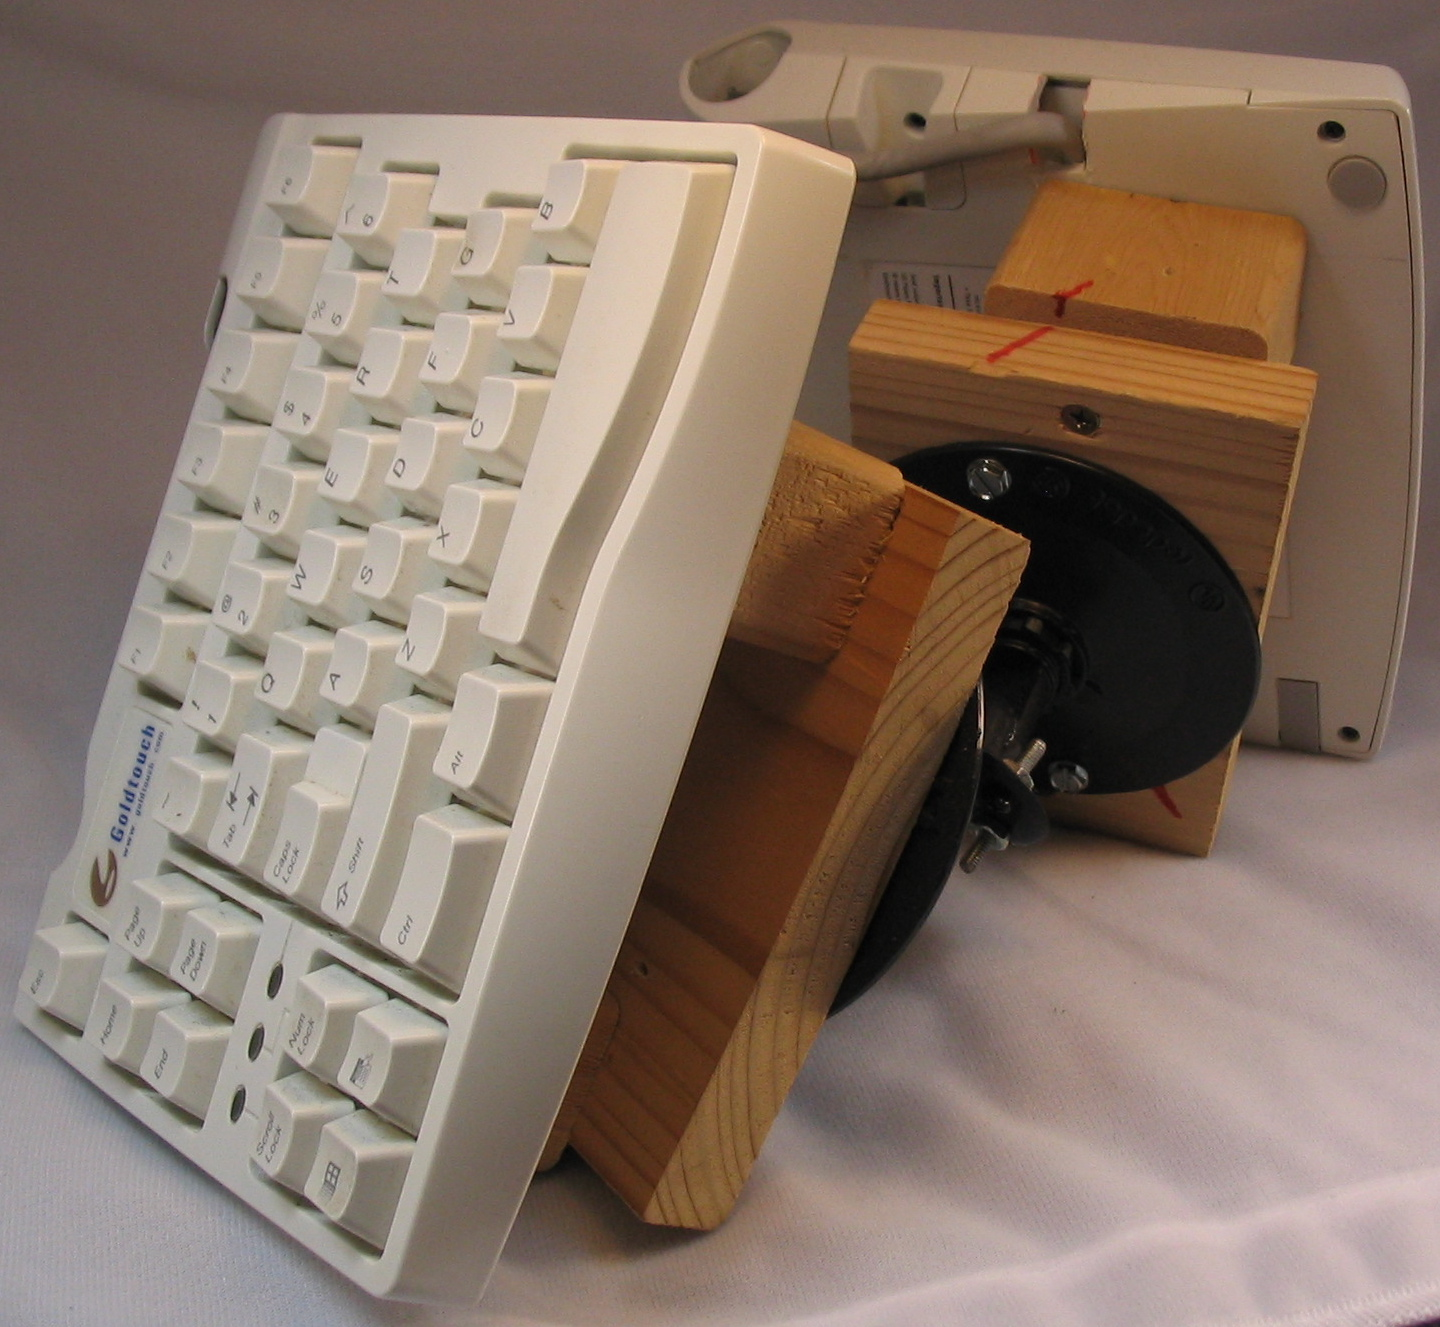 How to make a vertical, ergonomic (tie-fighter) keyboard